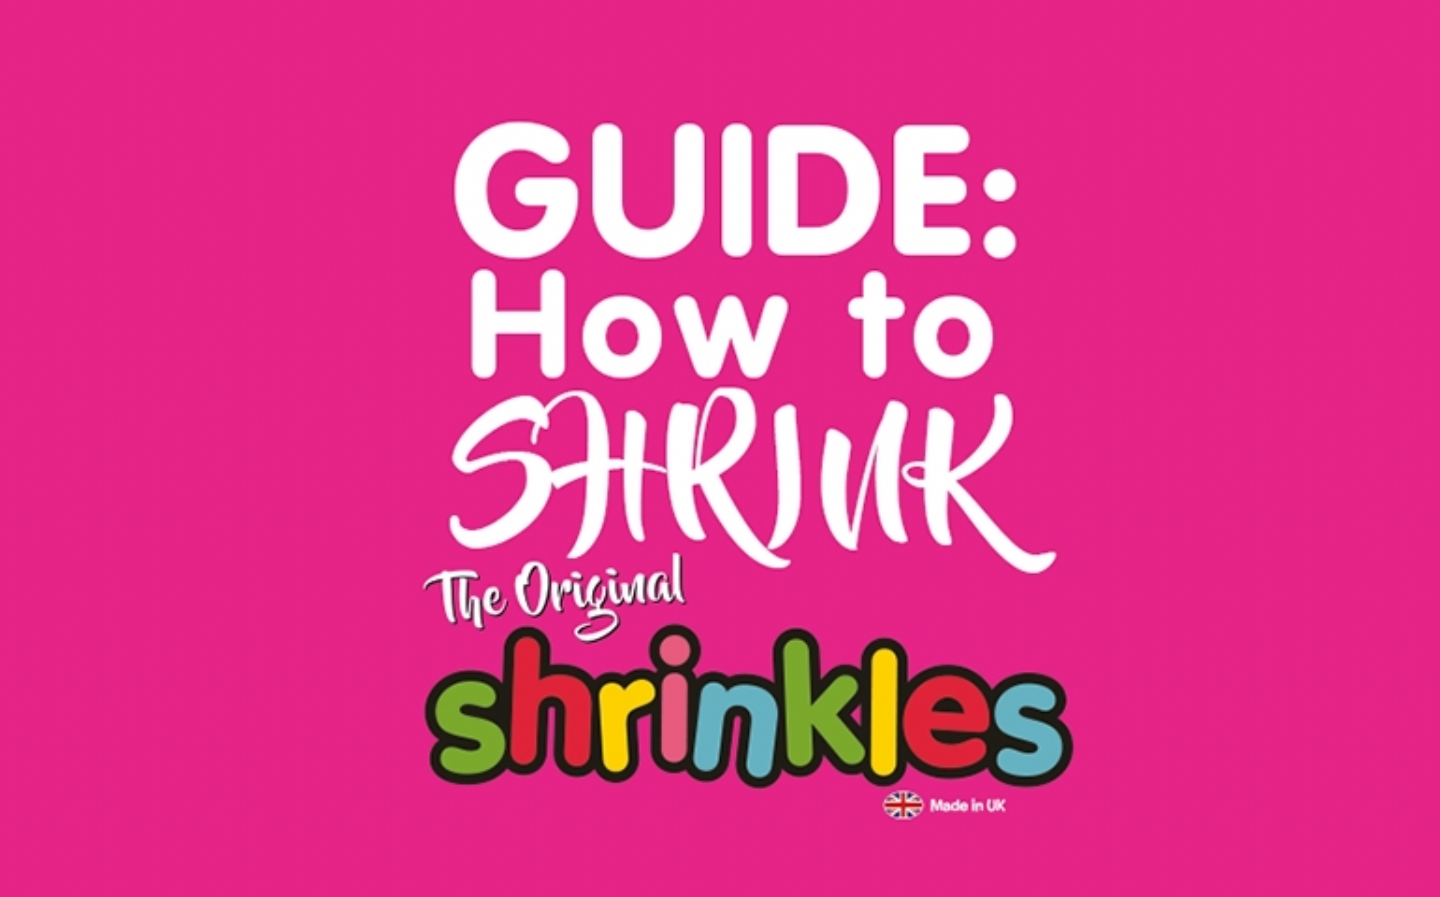 Guide: How to SHRINK Shrinkles